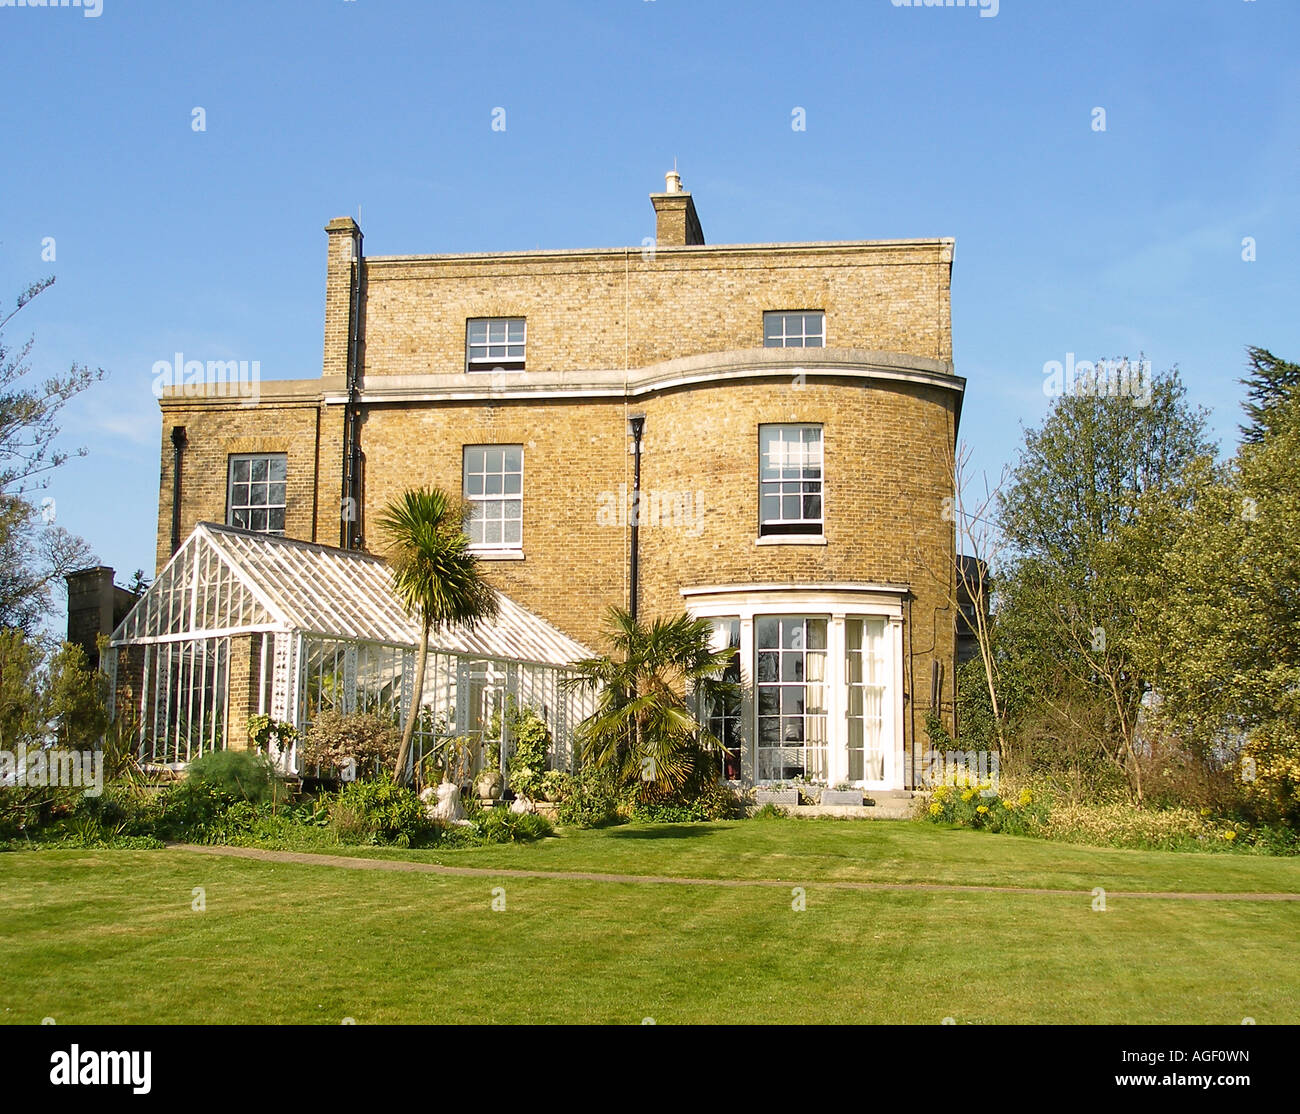 Typical english country house and garden stock photo for Country house online